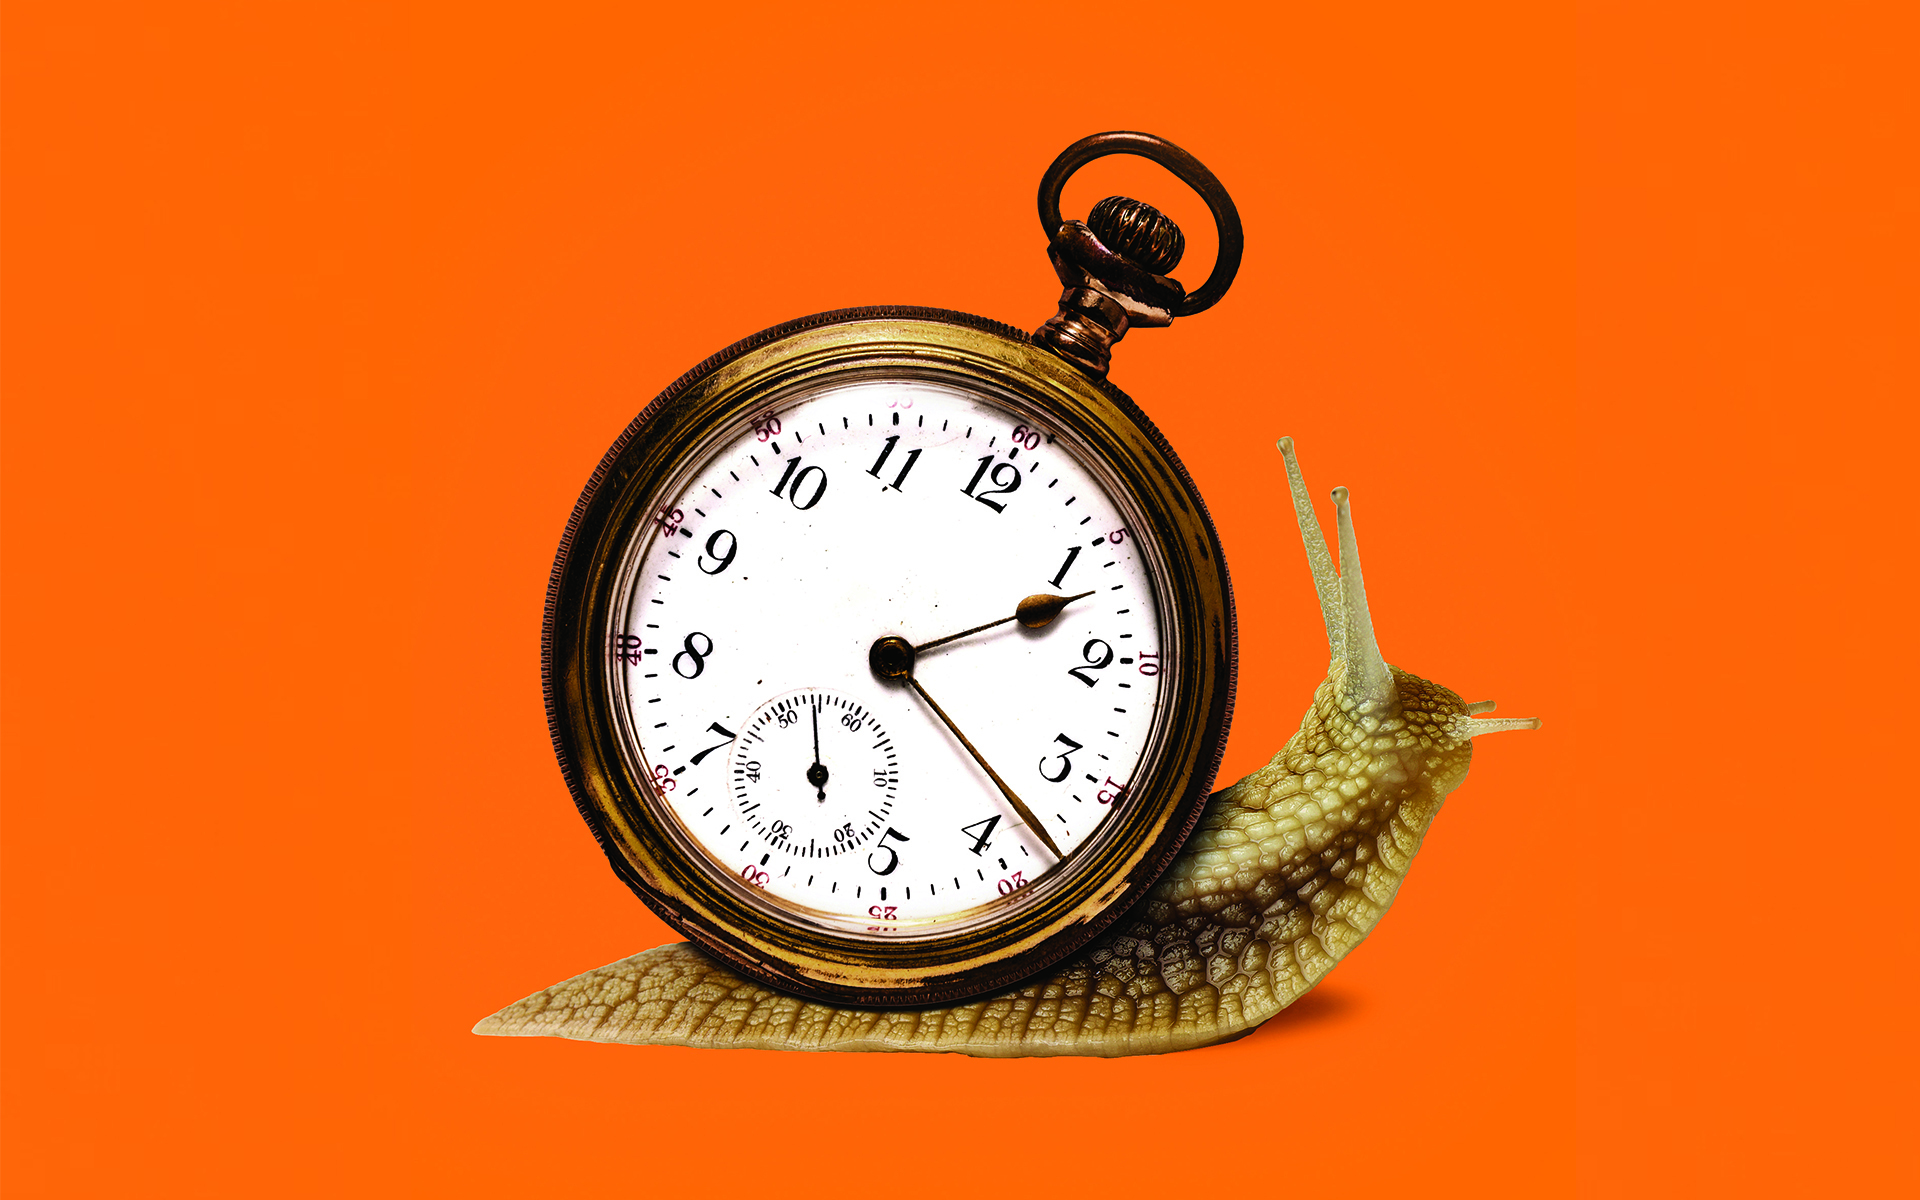 Snail with a stop watch as its shell on an orange background.